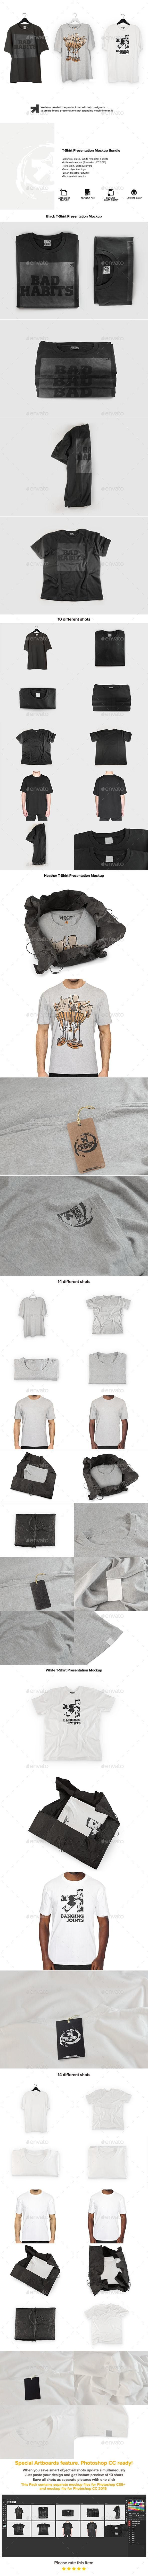 922+ T Shirt Mockup Bundle Best Quality Mockups PSD